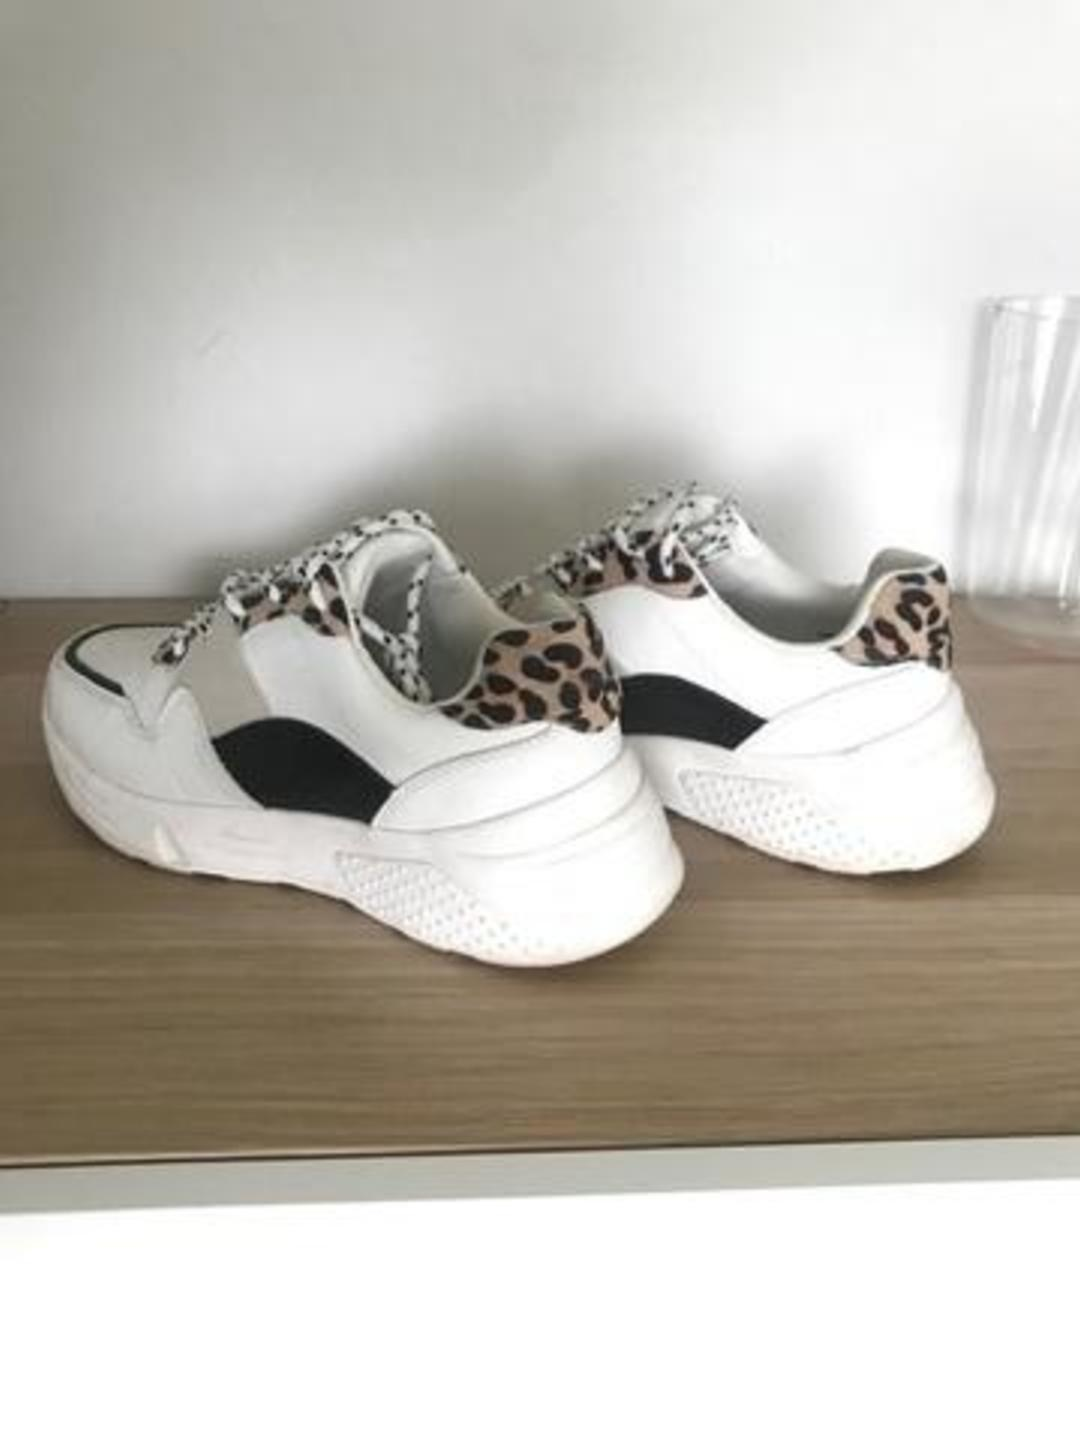 Damers sneakers - ZALANDO photo 2